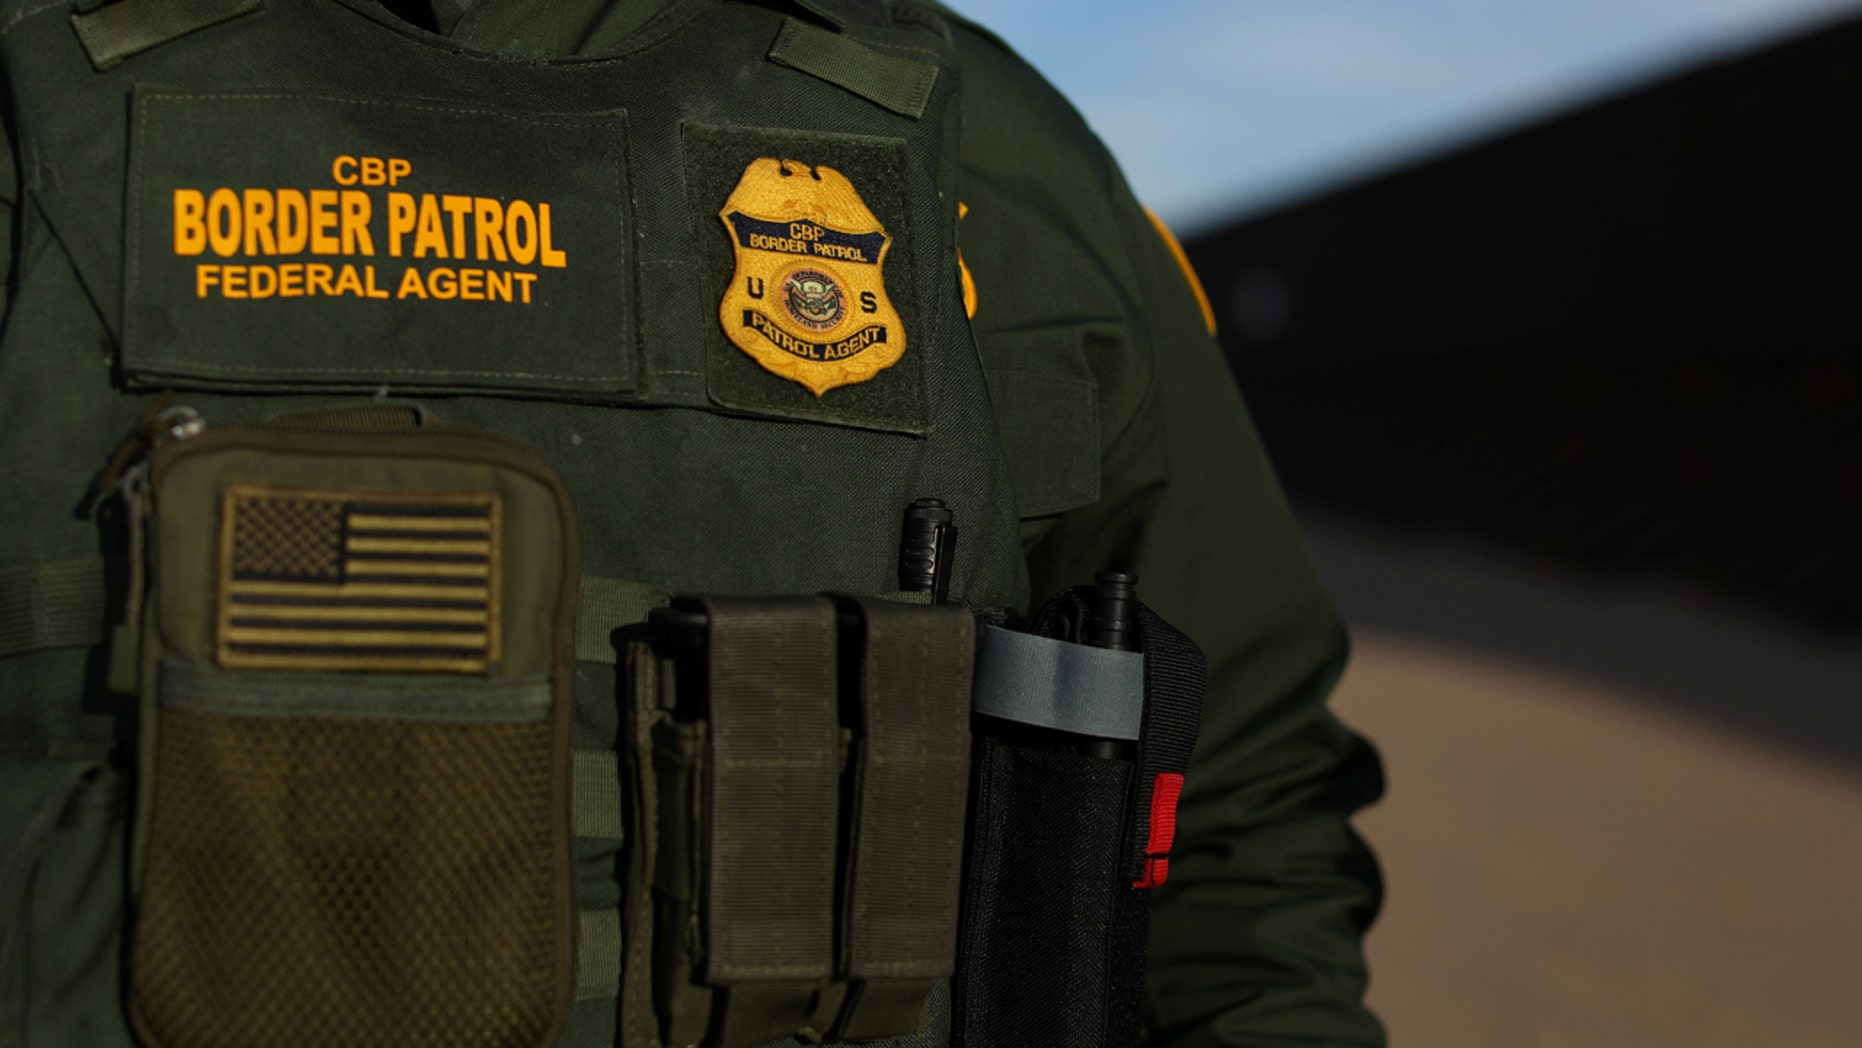 A U.S. border patrol agent was wounded in a shooting near the U.S.-Mexico border.